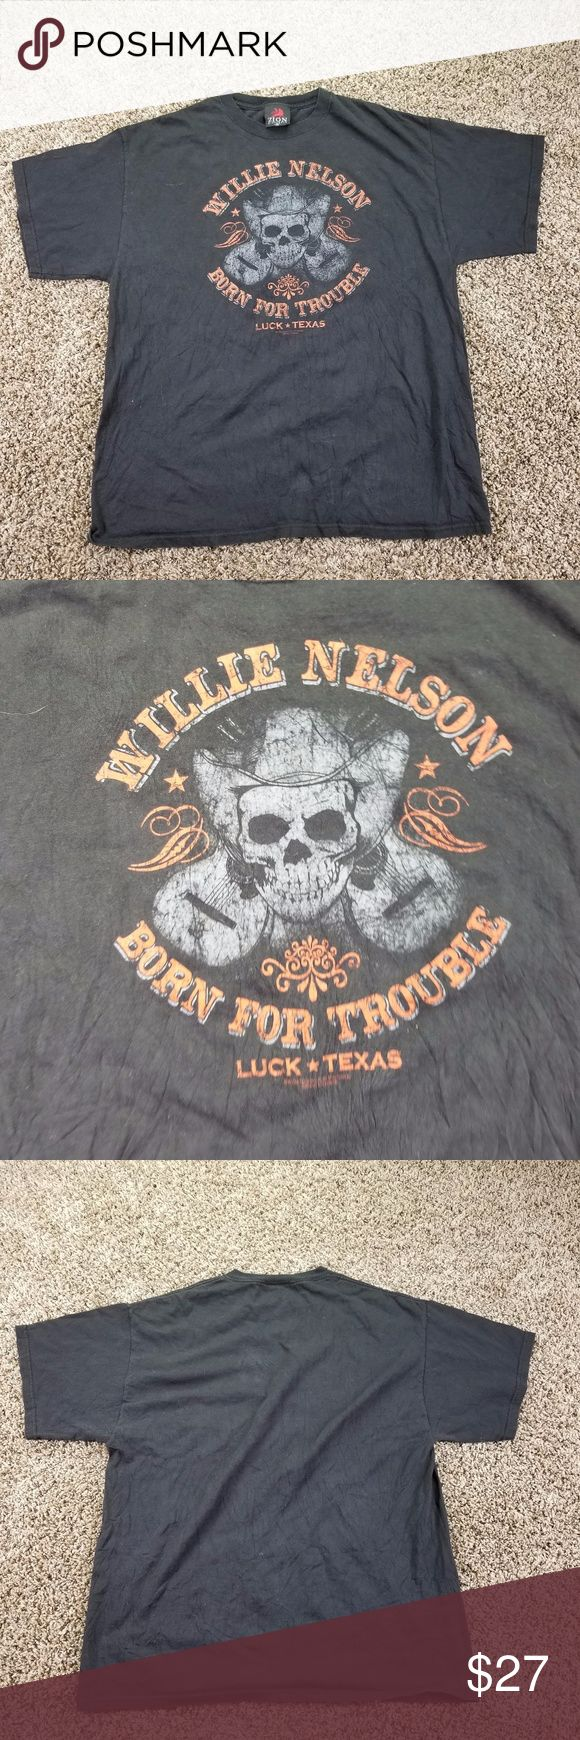 Willie Nelson Born For Trouble Vintage T-shirt Bla Willie Nelson Born For Trouble Vintage T-shirt Black Mens 1X Top Short Sleeve green16/13/10 chest 24 length 30 Born Shirts Tees - Short Sleeve